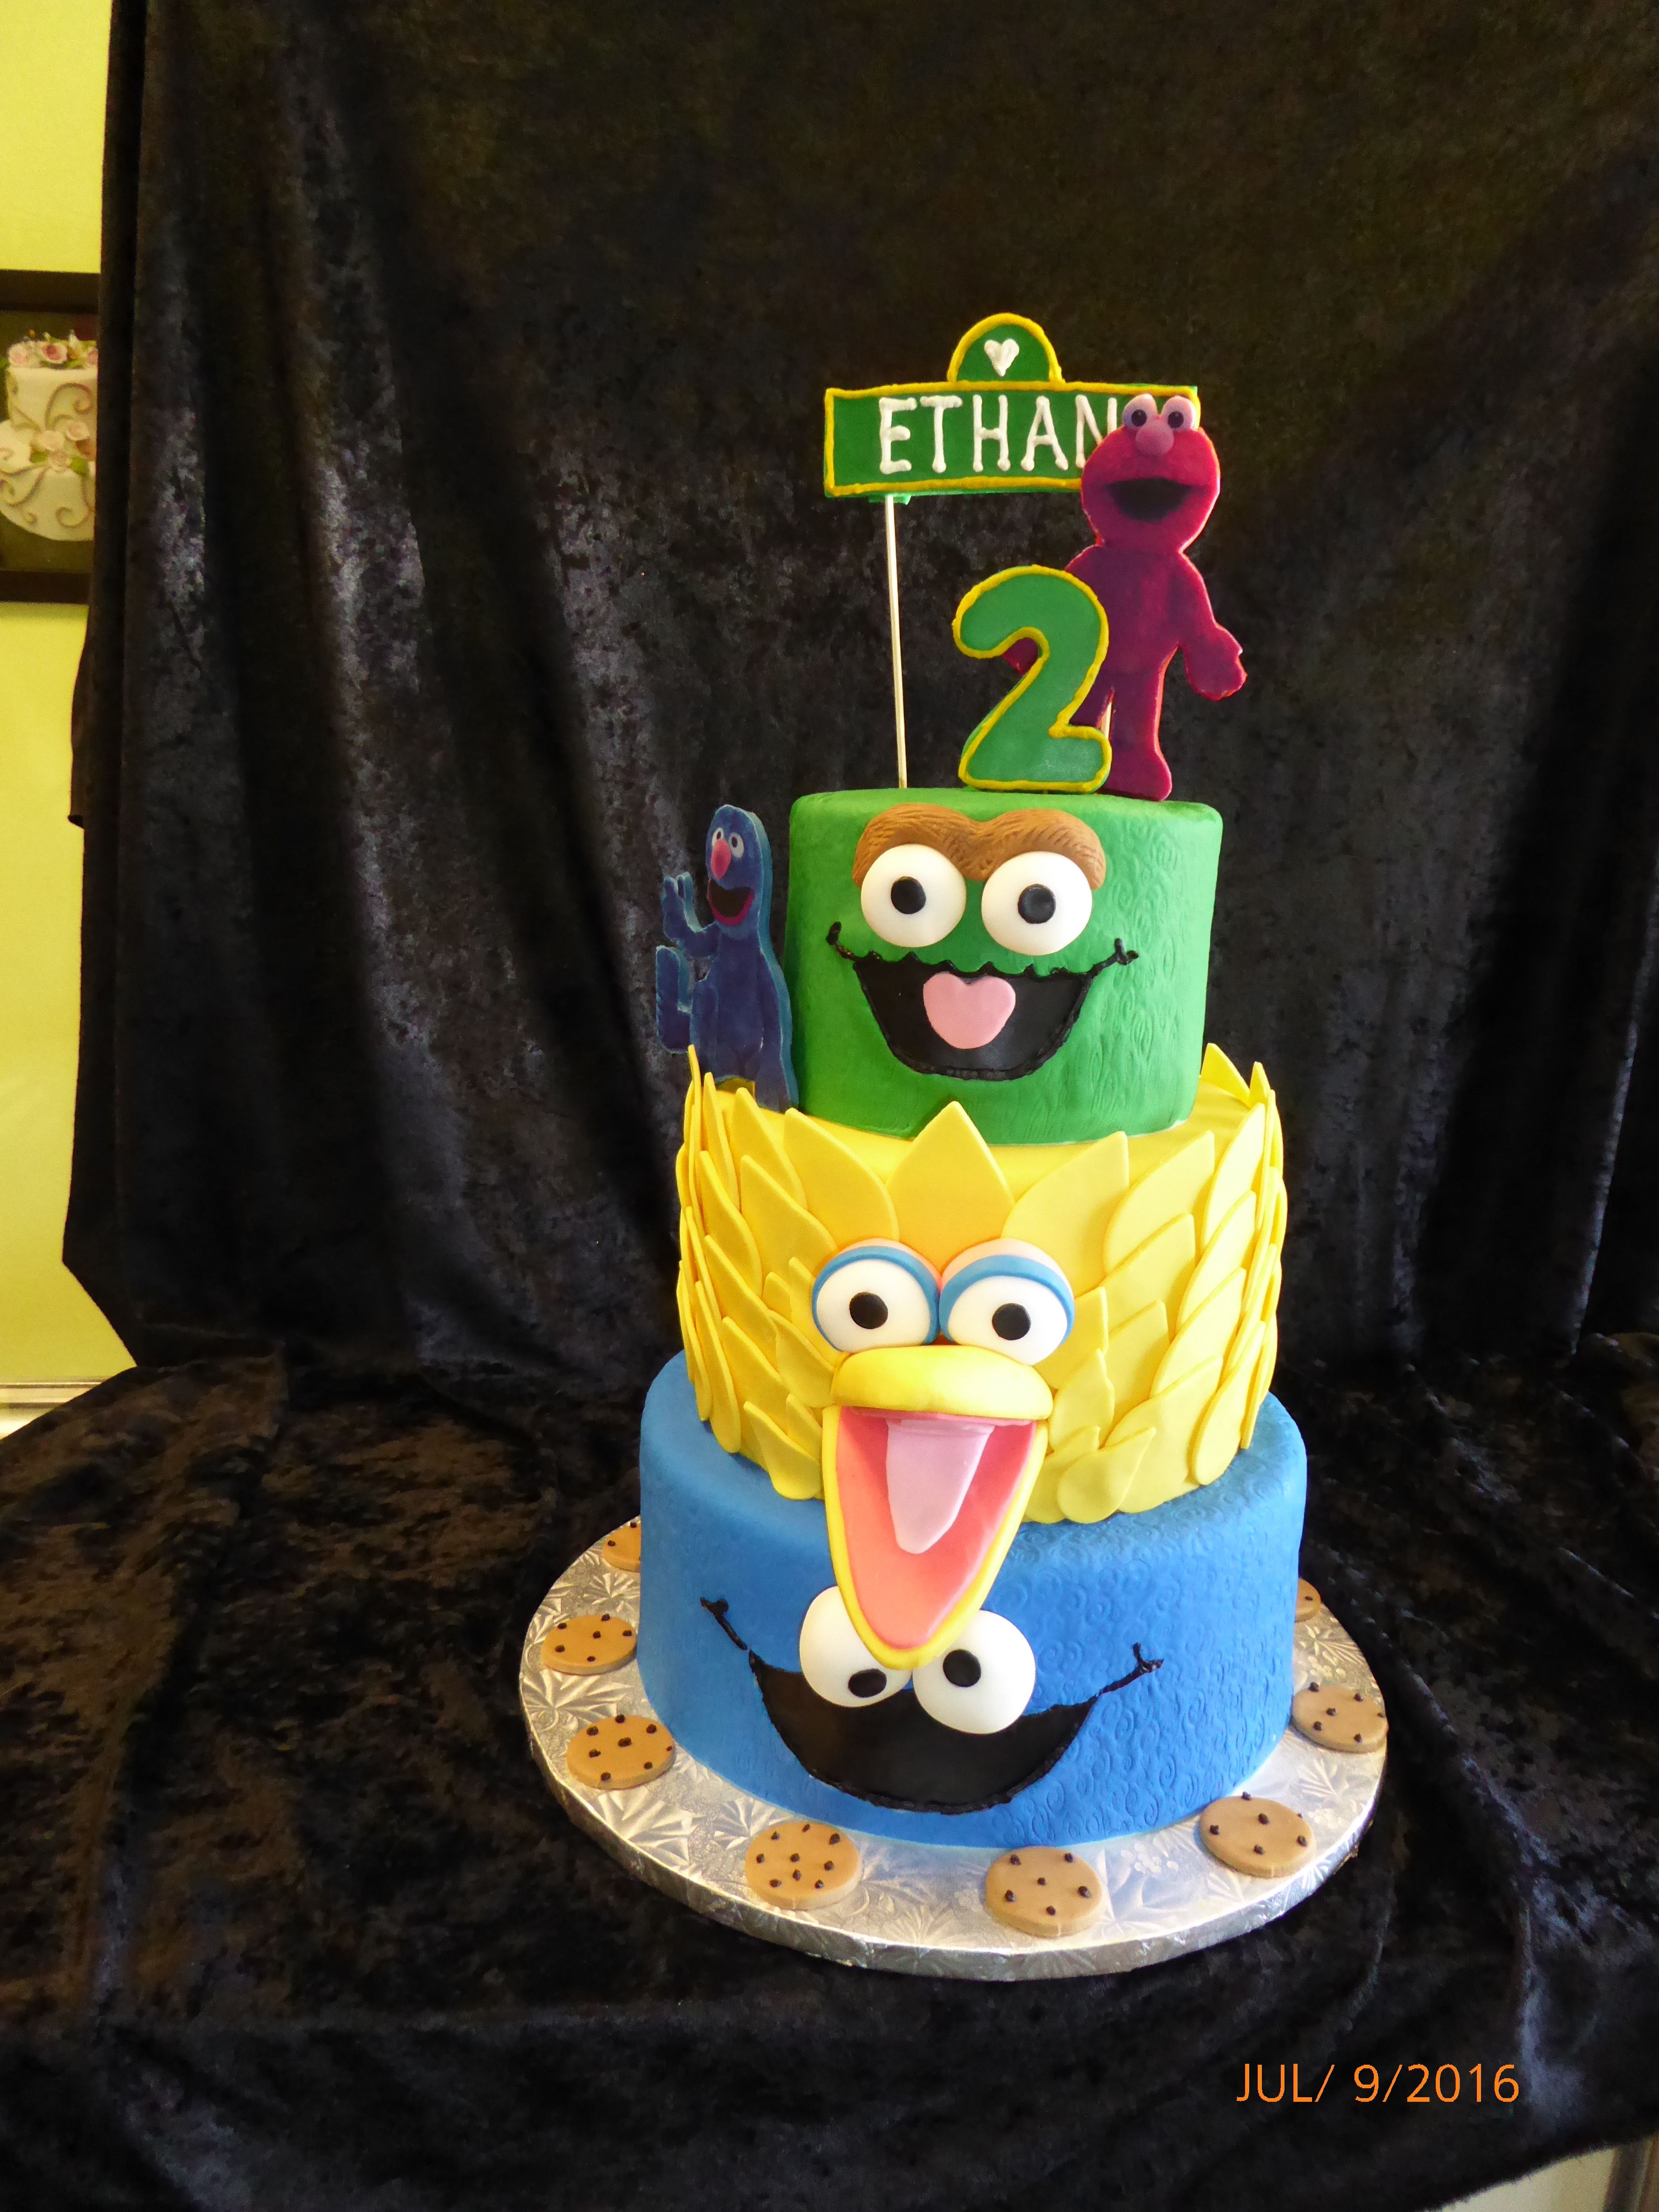 3009, second birthday, 2nd birthday, oscar, big bird, cookie monster, elmo, grover, tiered, green, yellow, blue